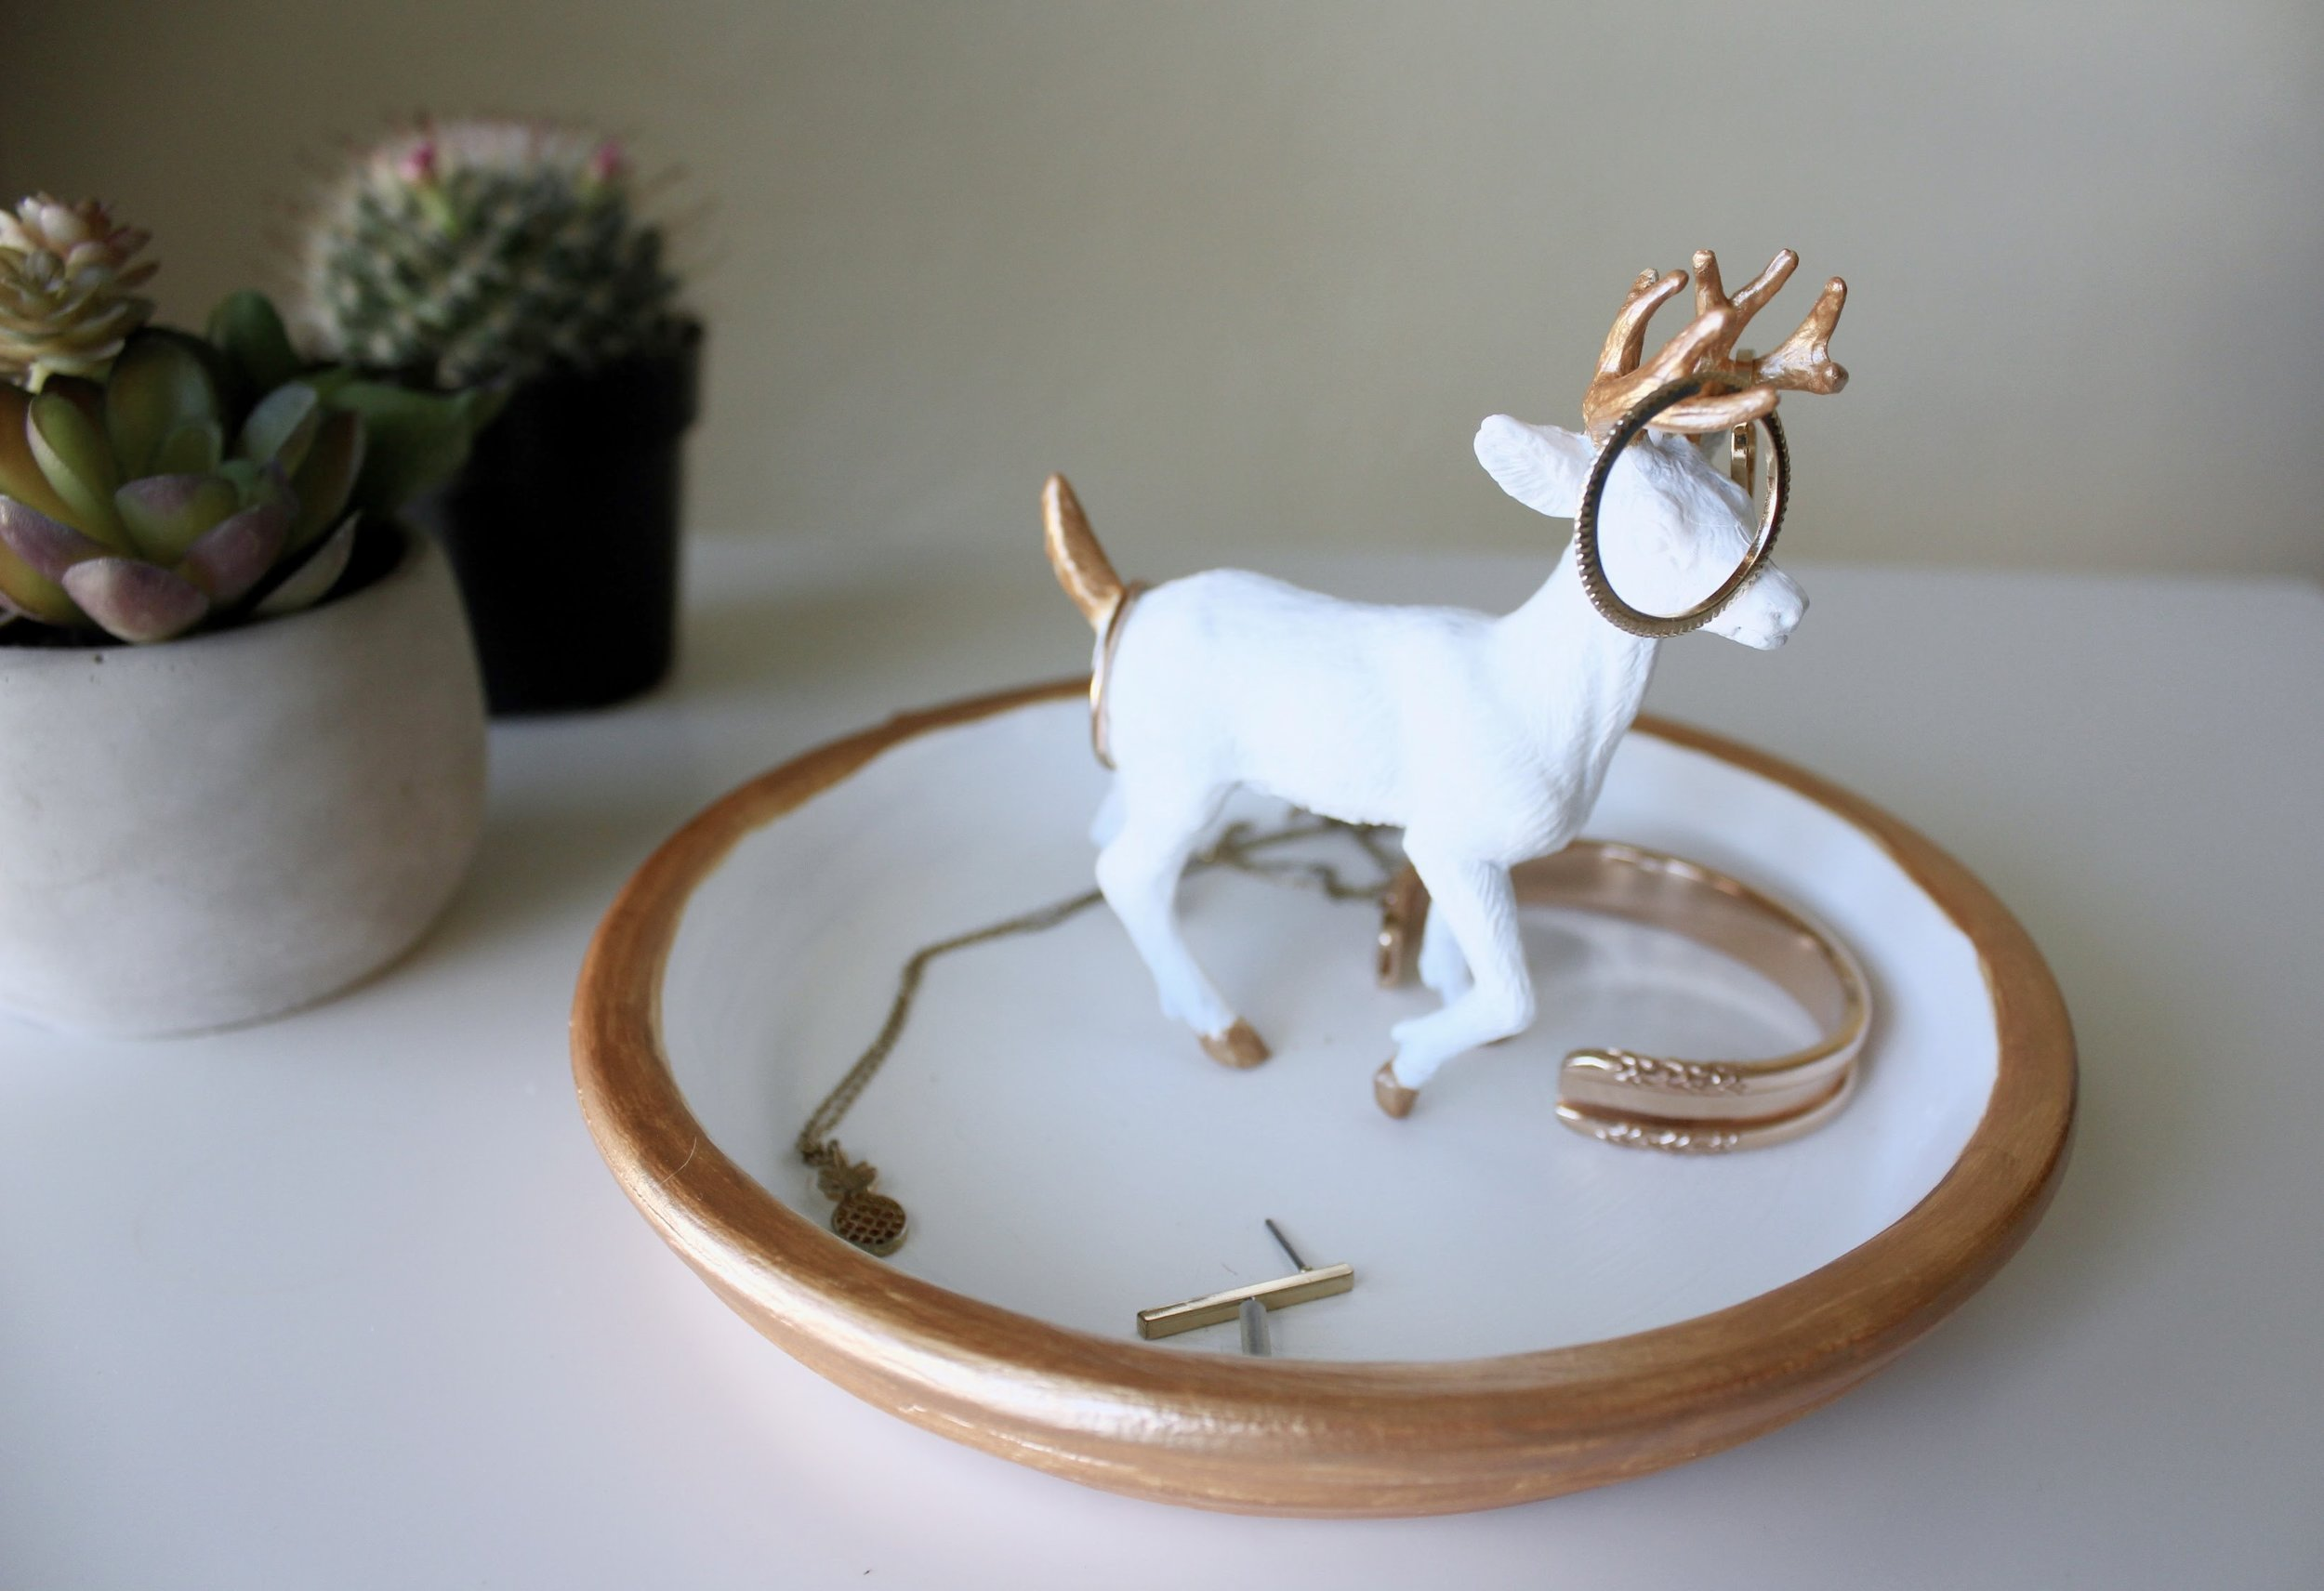 Succulent and Cactus displayed with a finished DIY Jewelry Dish with a Deer Figurine. Gold Jewelry Displayed including Maria Shireen Floral HairTie Bracelet.